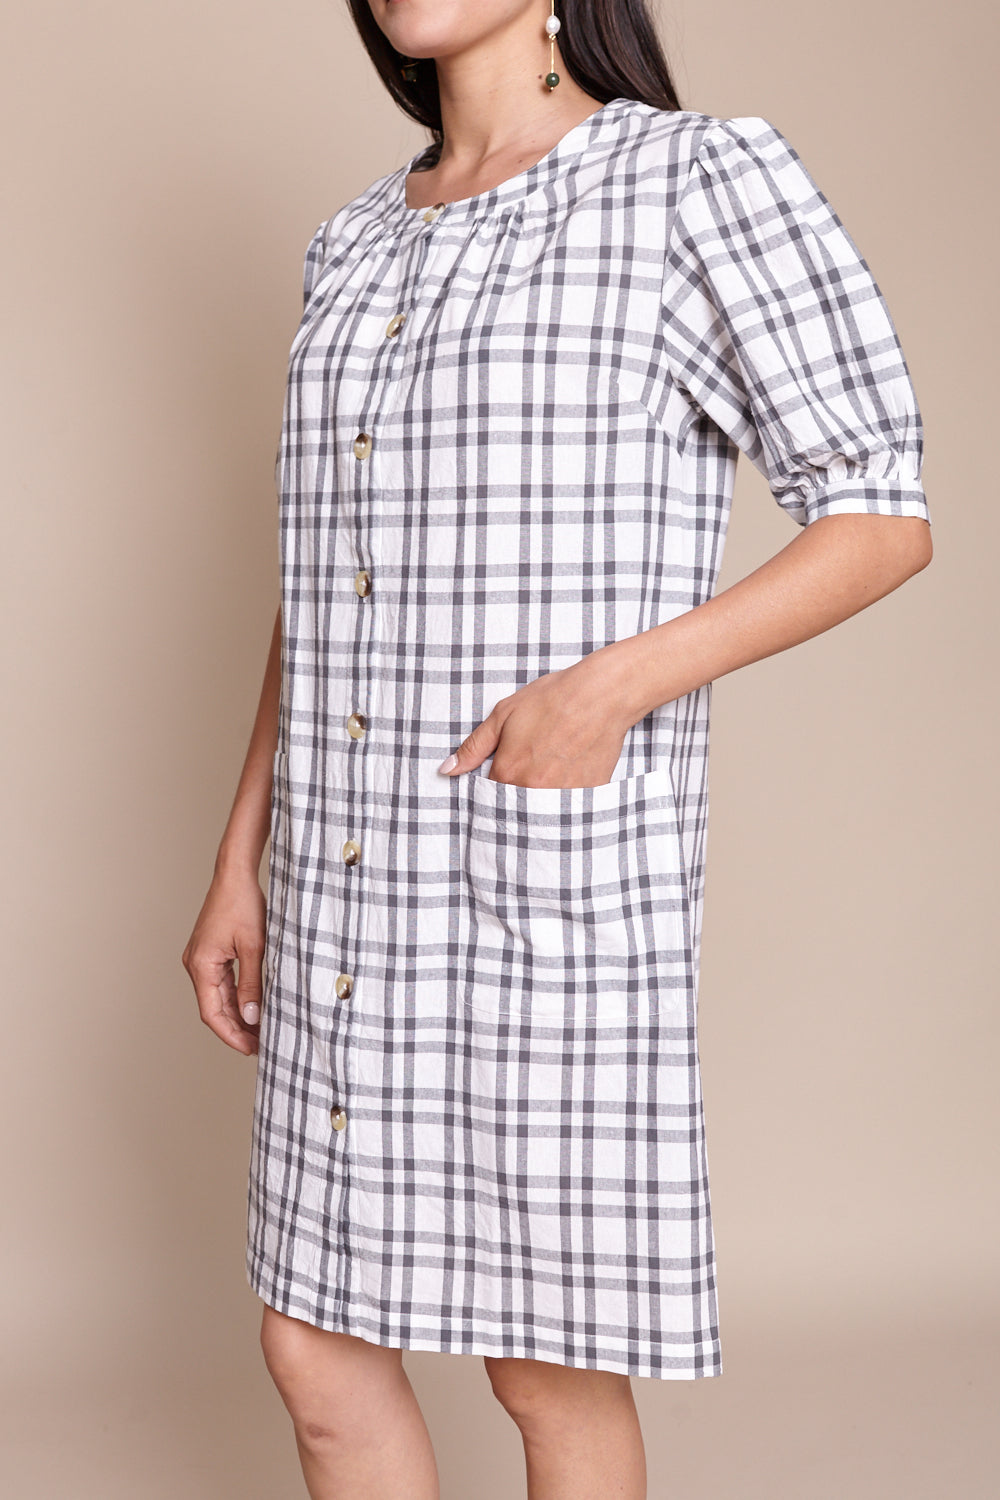 Puff Sleeve Shirt Dress in Grey